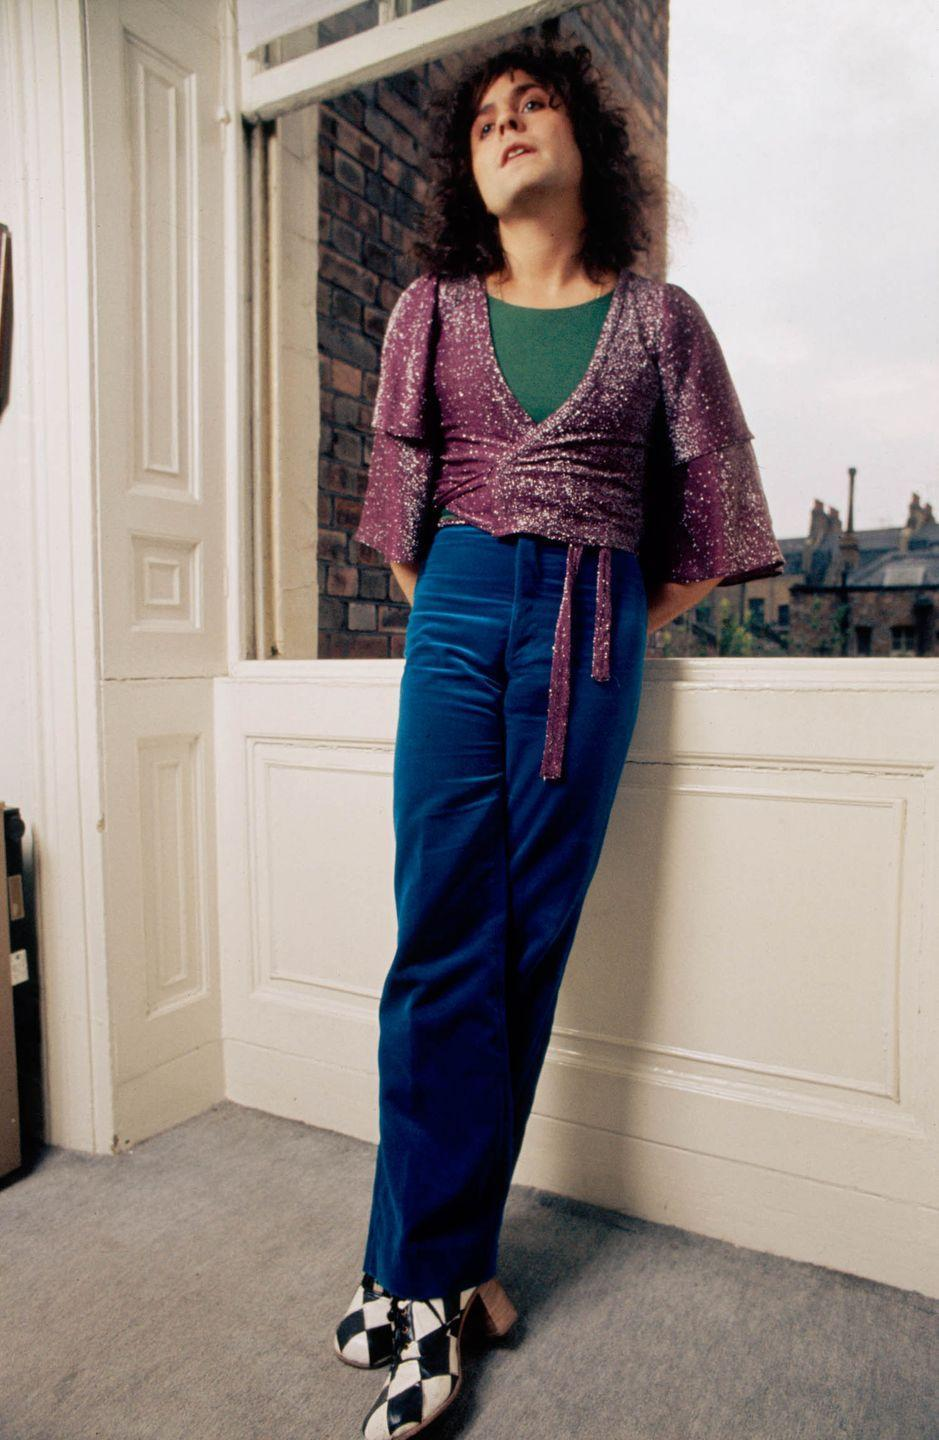 <p>Glam rock star Marc Bolan, frontman for the act T. Rex, at home in velvet trousers and checkered shoes in 1975.</p>